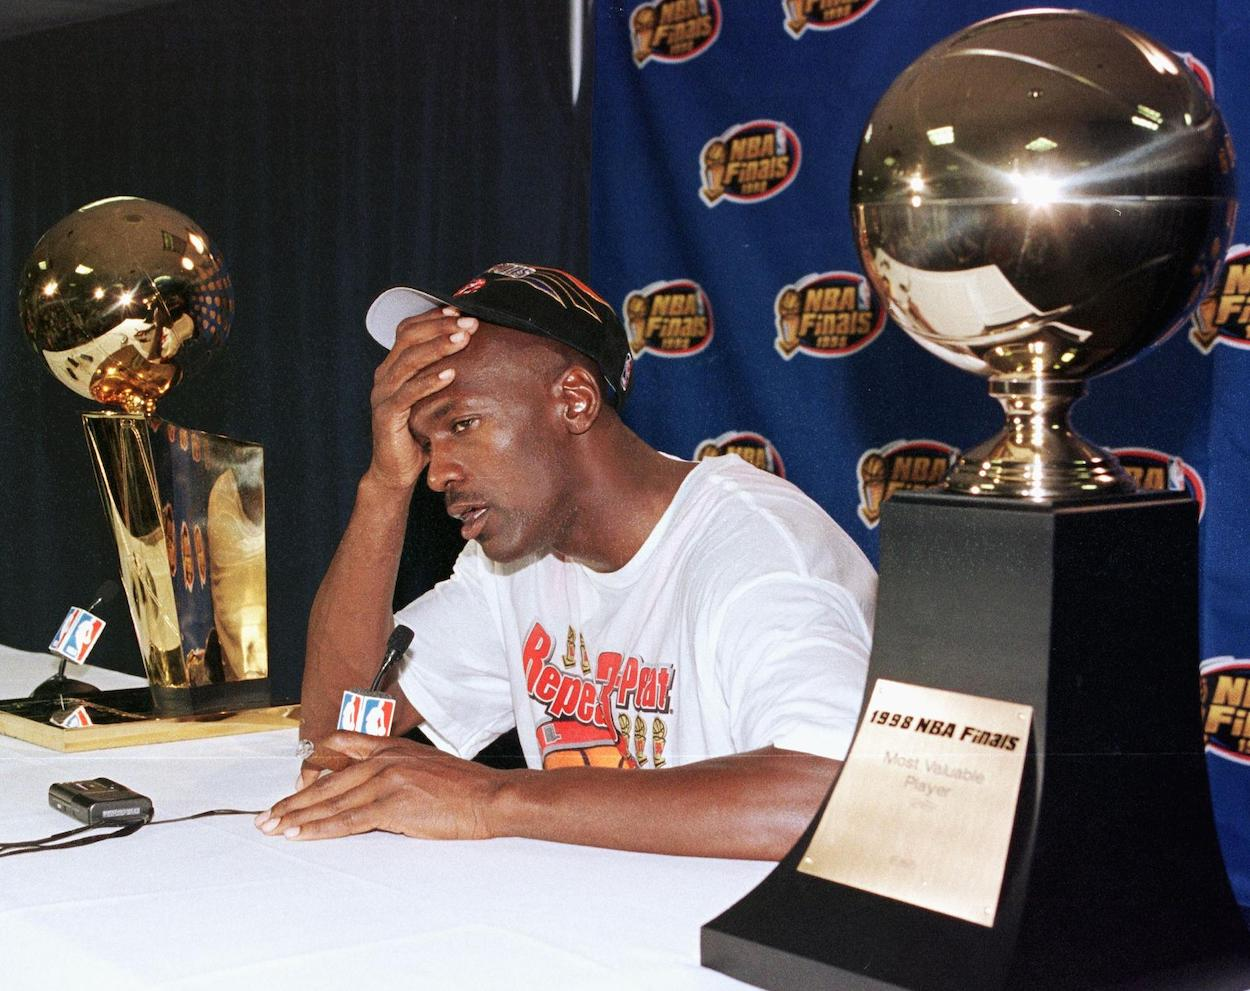 Michael Jordan Is Considered the NBA GOAT, but He Was Only the Highest-Paid Player in the League for 2 of his 15 Seasons